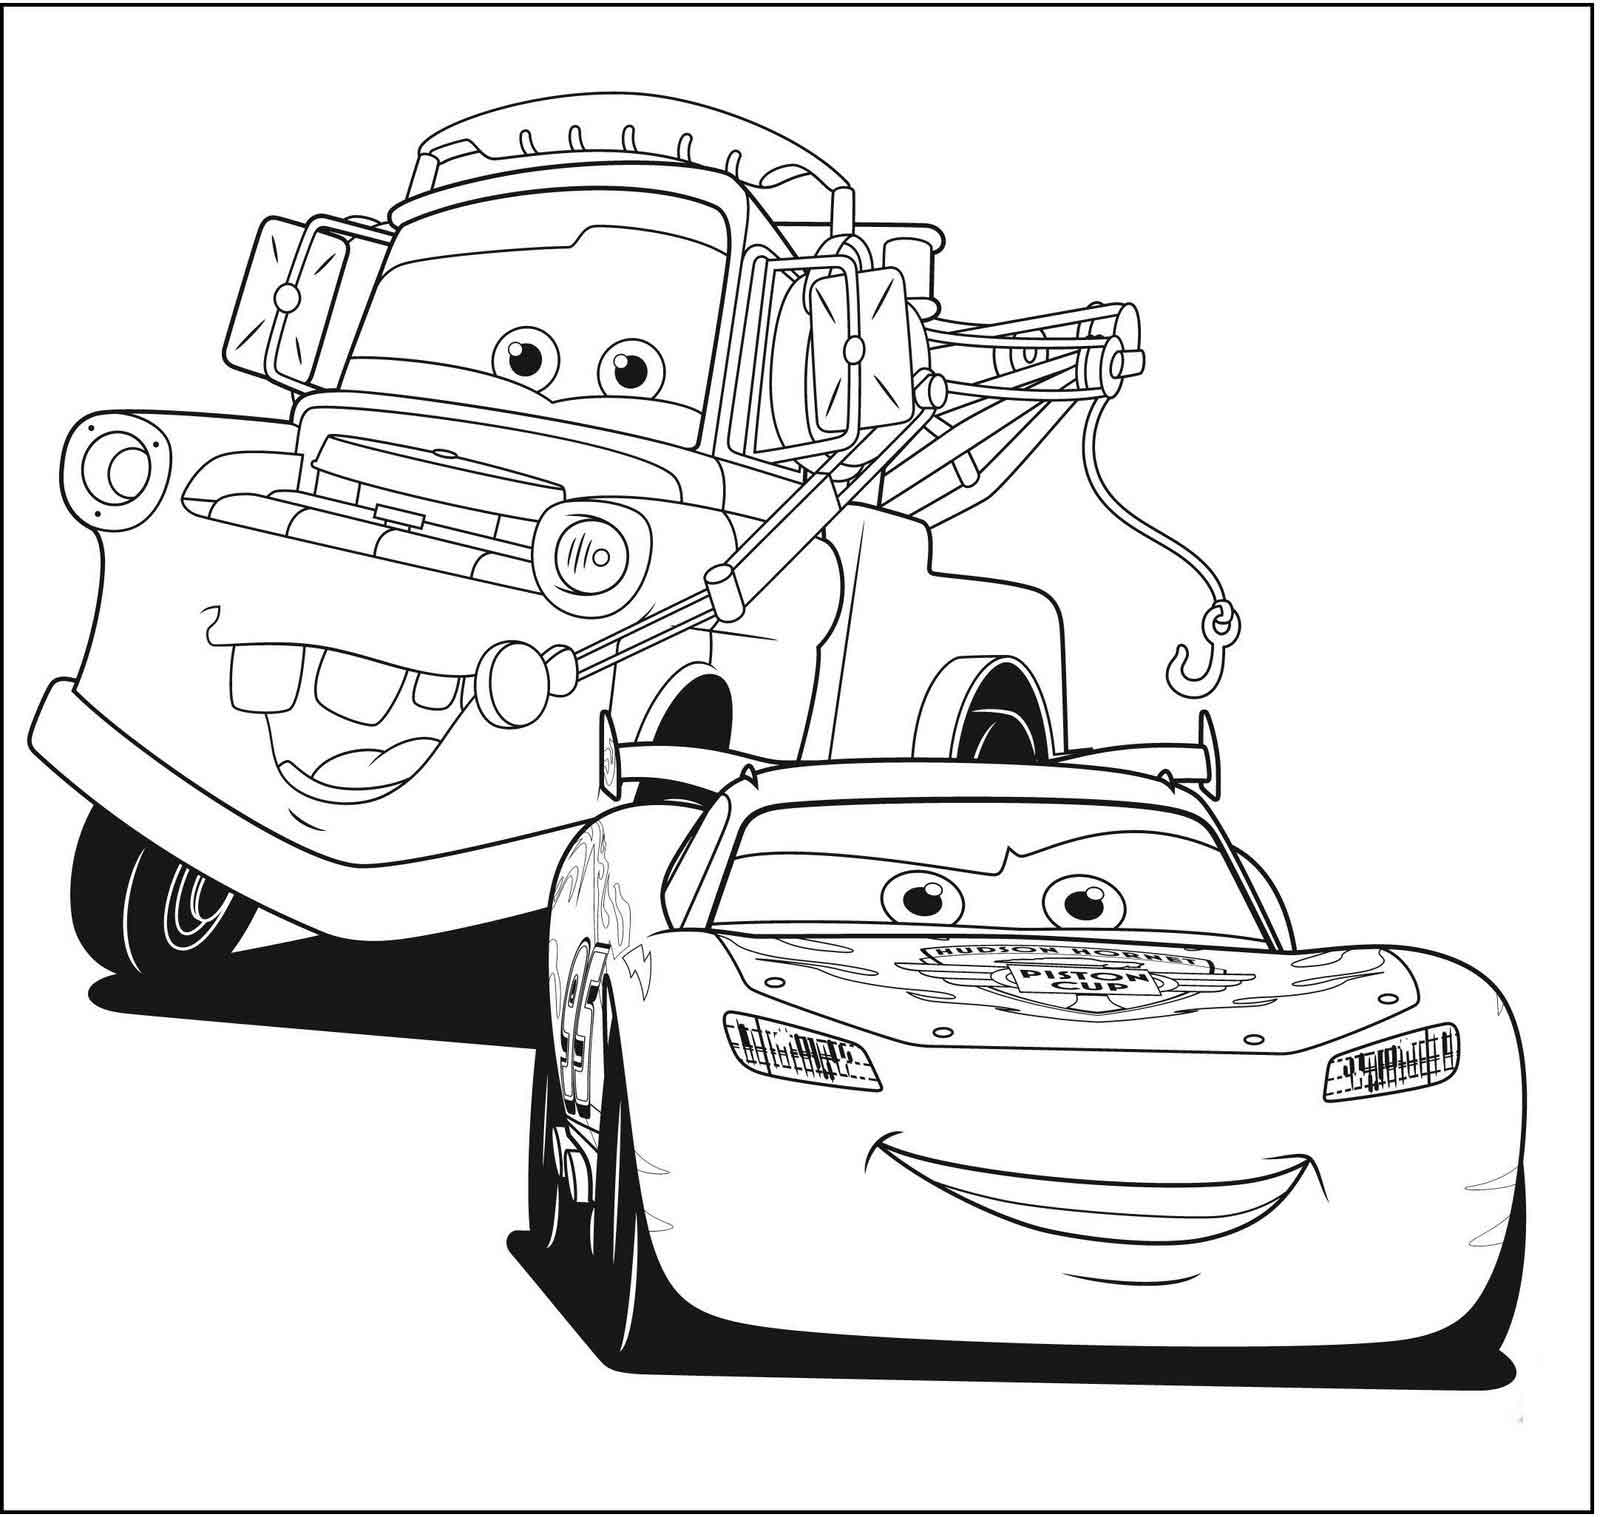 coloring pages race cars coloring pages race cars coloring cars race pages